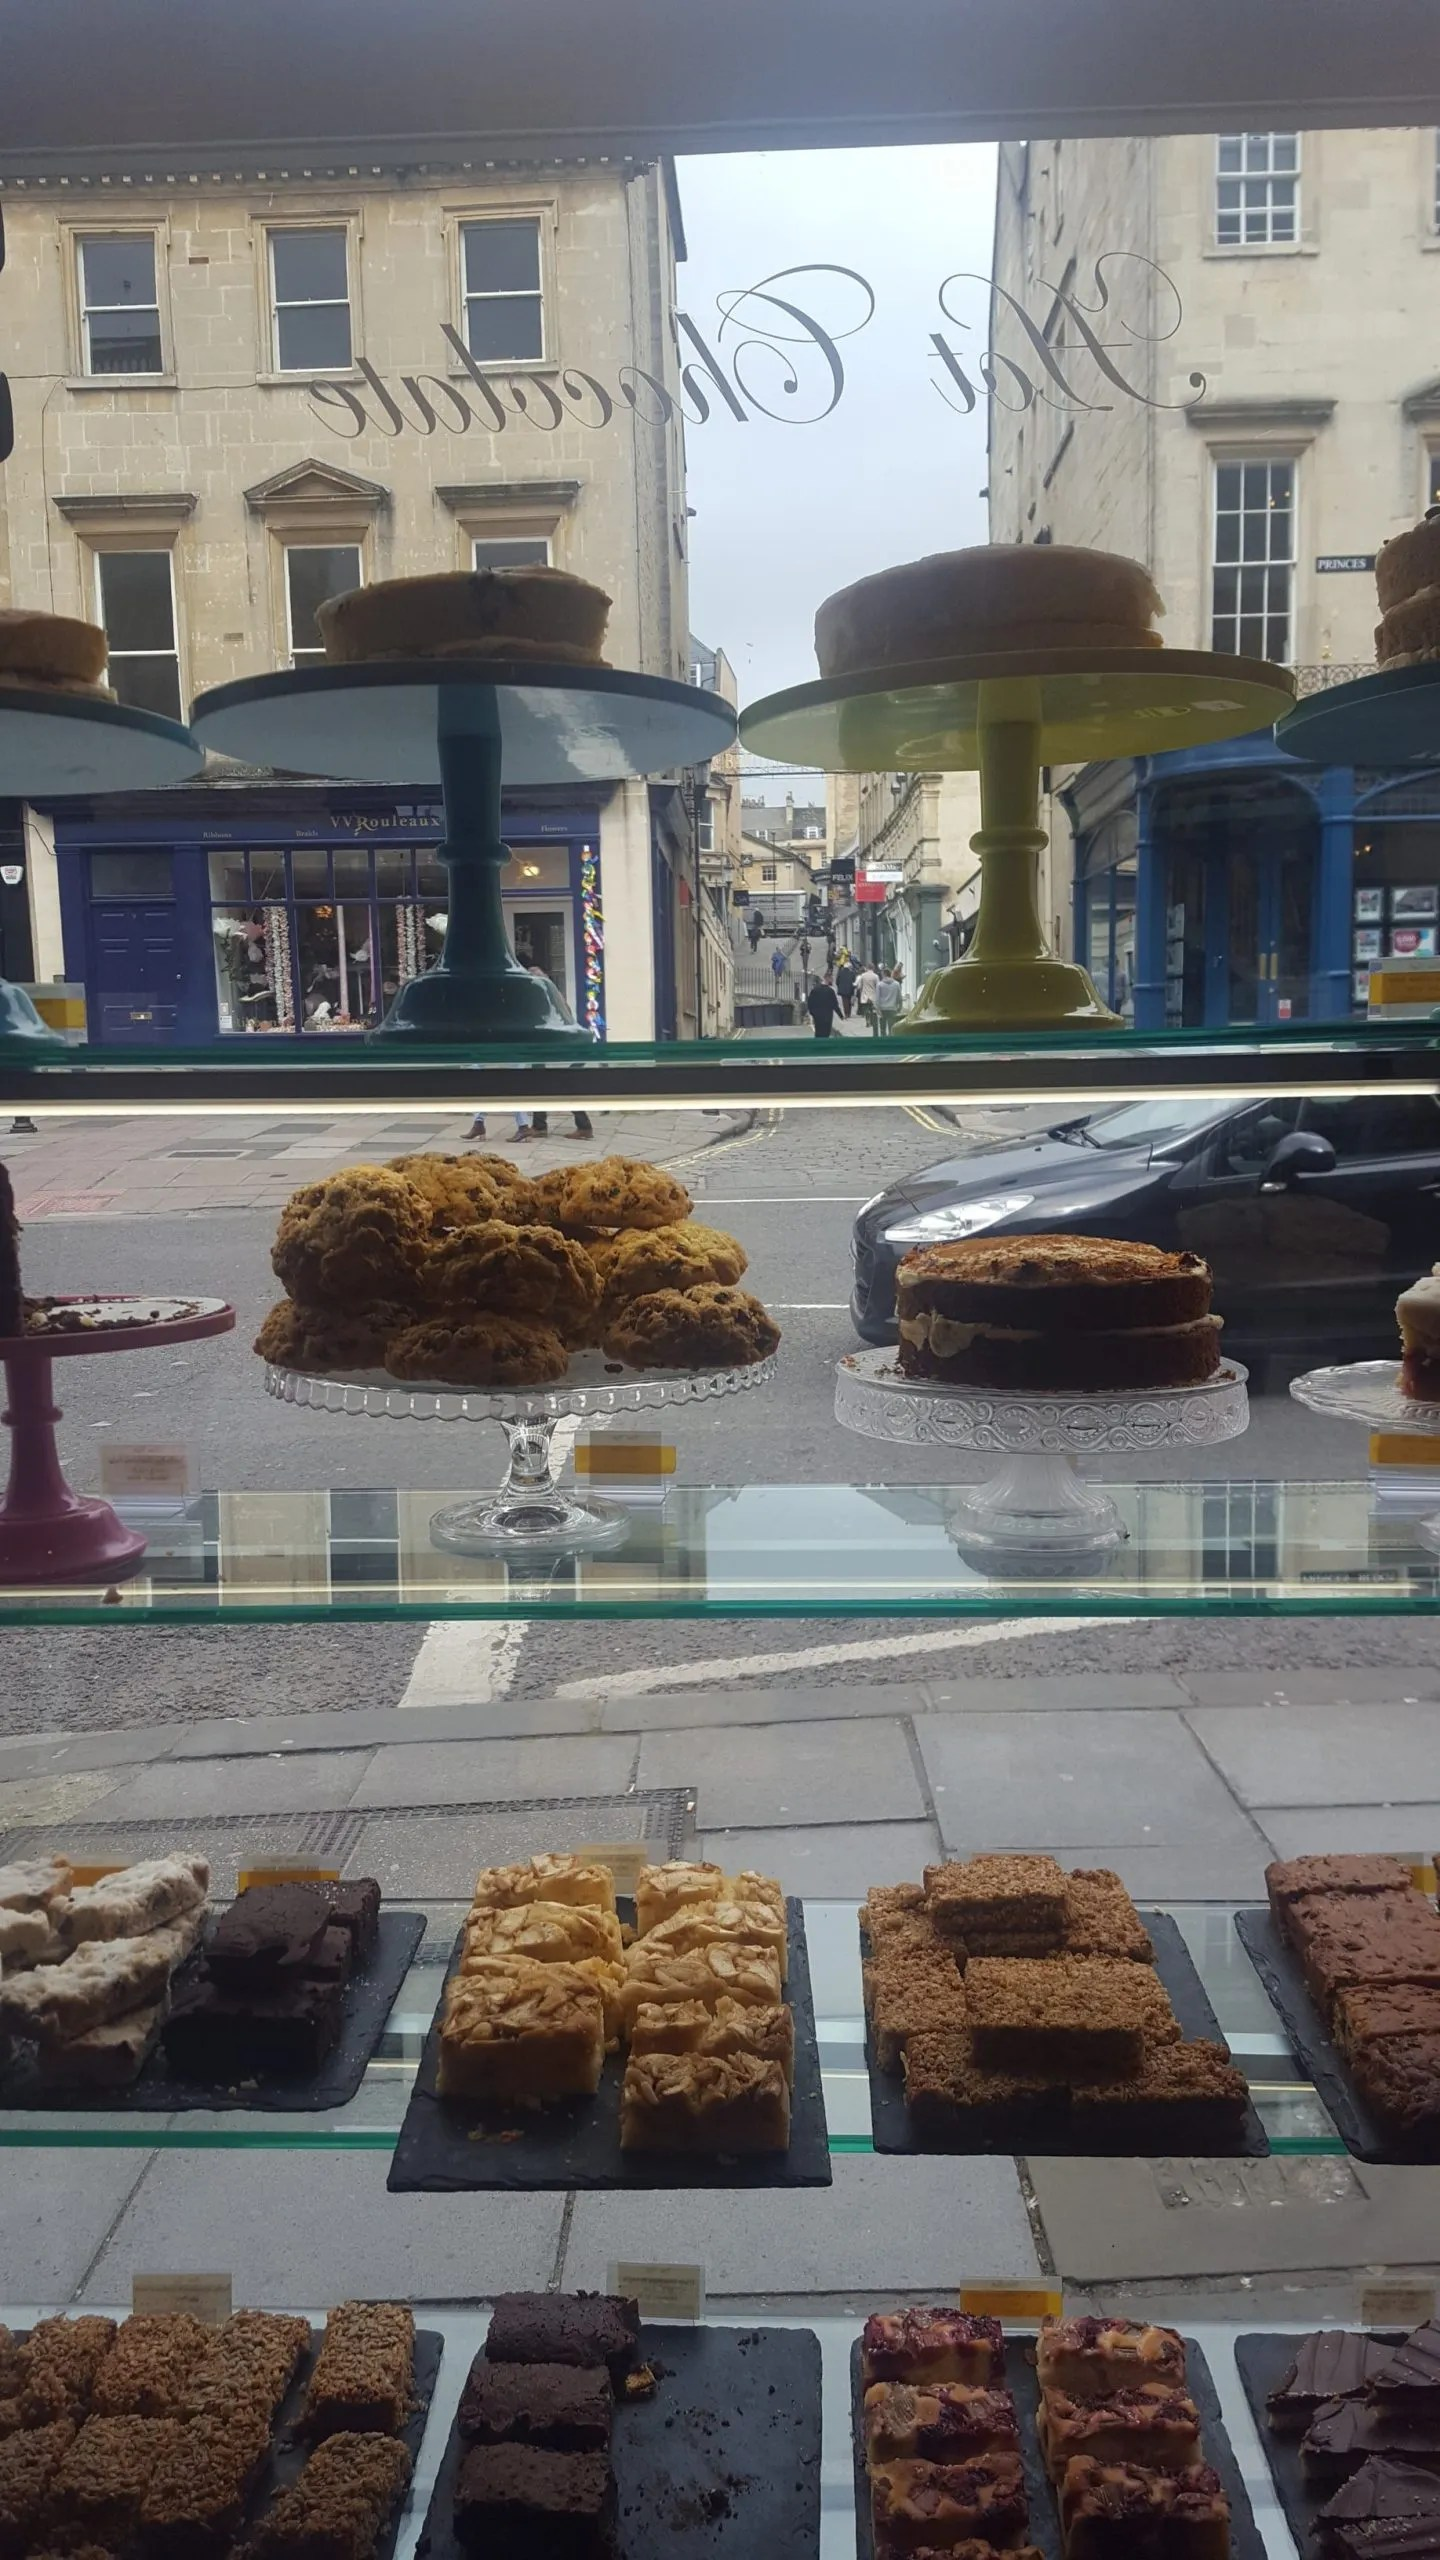 Bath Cake Shop window